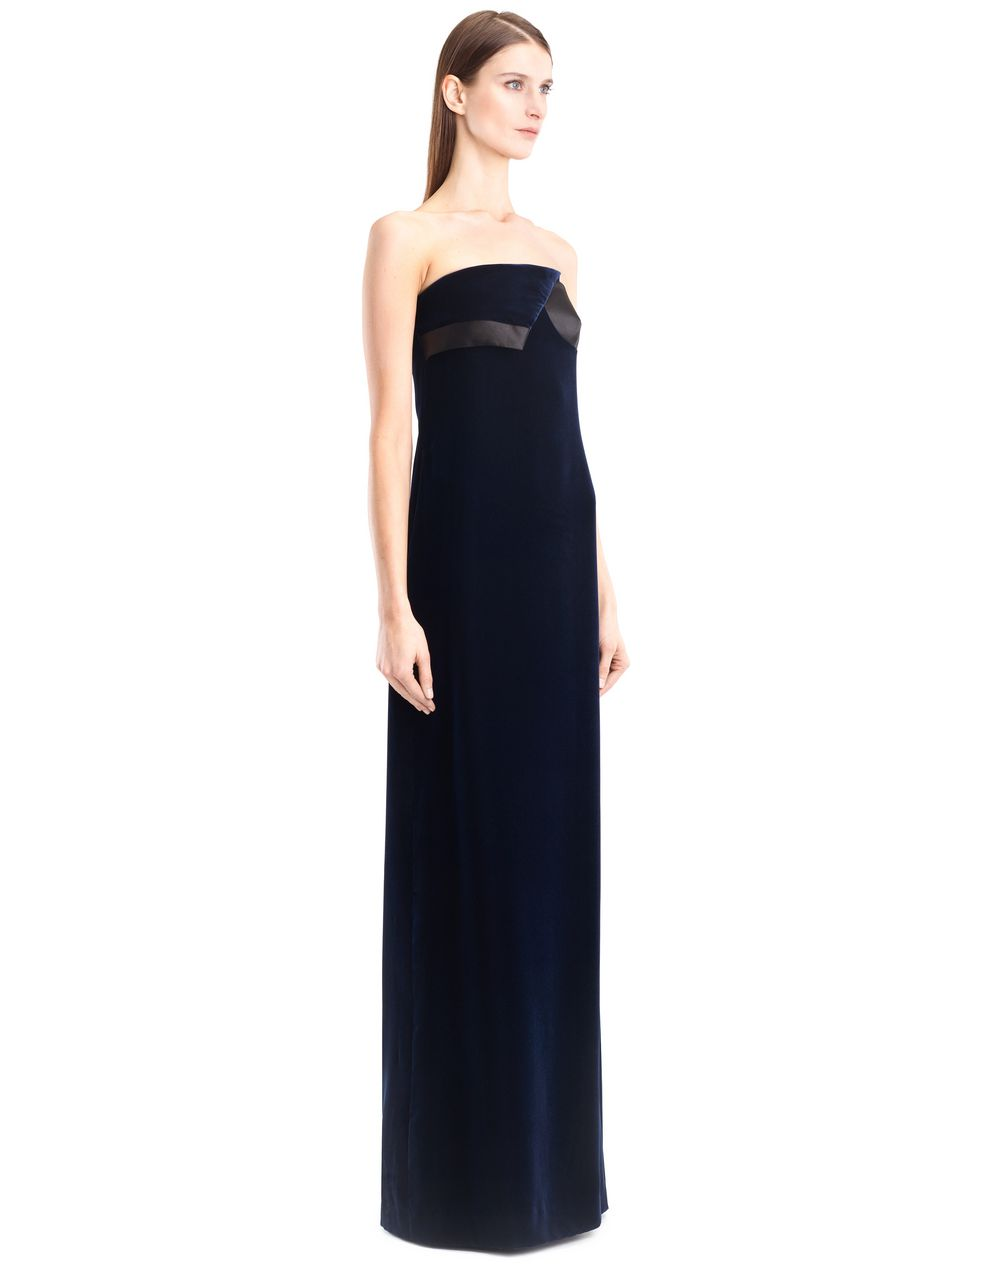 LONG FLOWY VELVET DRESS - Lanvin